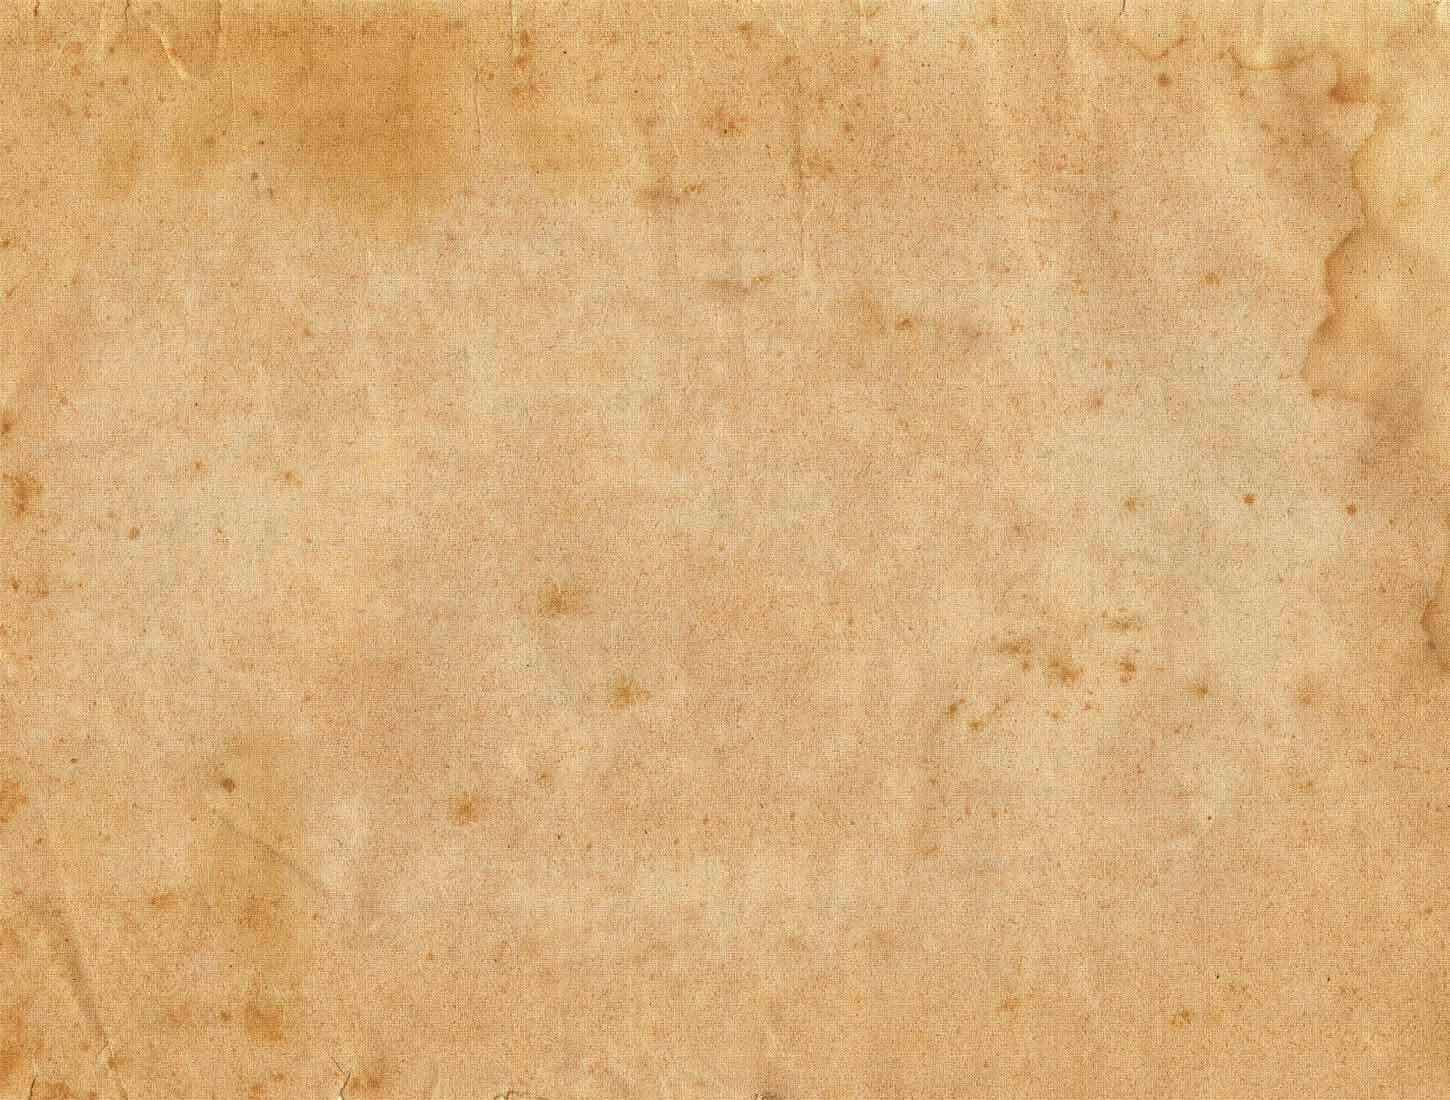 Old Beige Blank Paper Free Ppt Backgrounds For Your Pertaining To Blank Old Newspaper Template